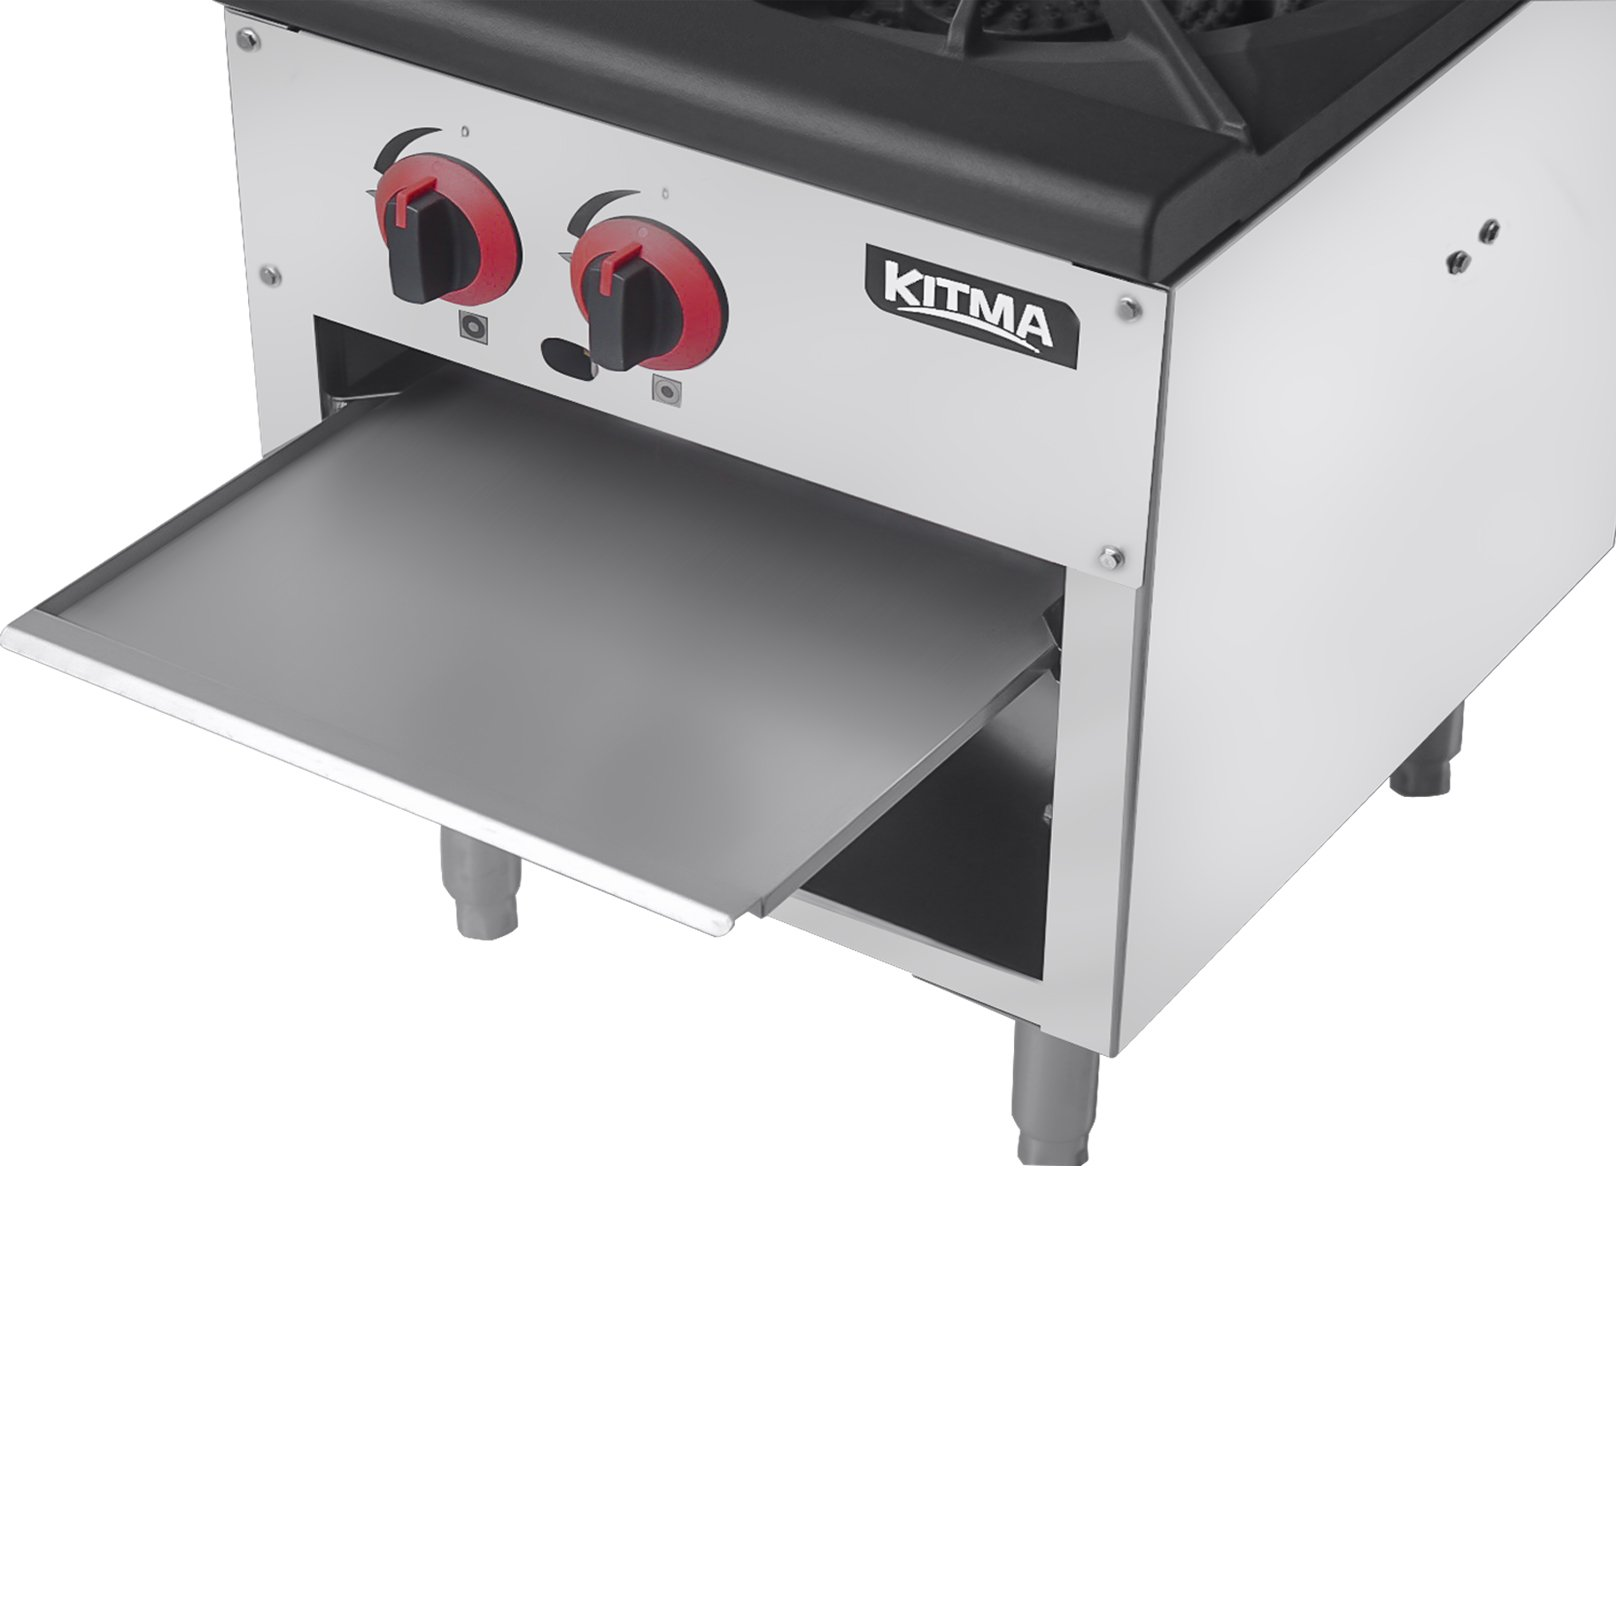 18 Inches Single Stock Pot Stove - KITMA Natural Gas Countertop Stock Pot Range with 2 Manual Controls - Restaurant Equipment for Soups by Kitma (Image #3)